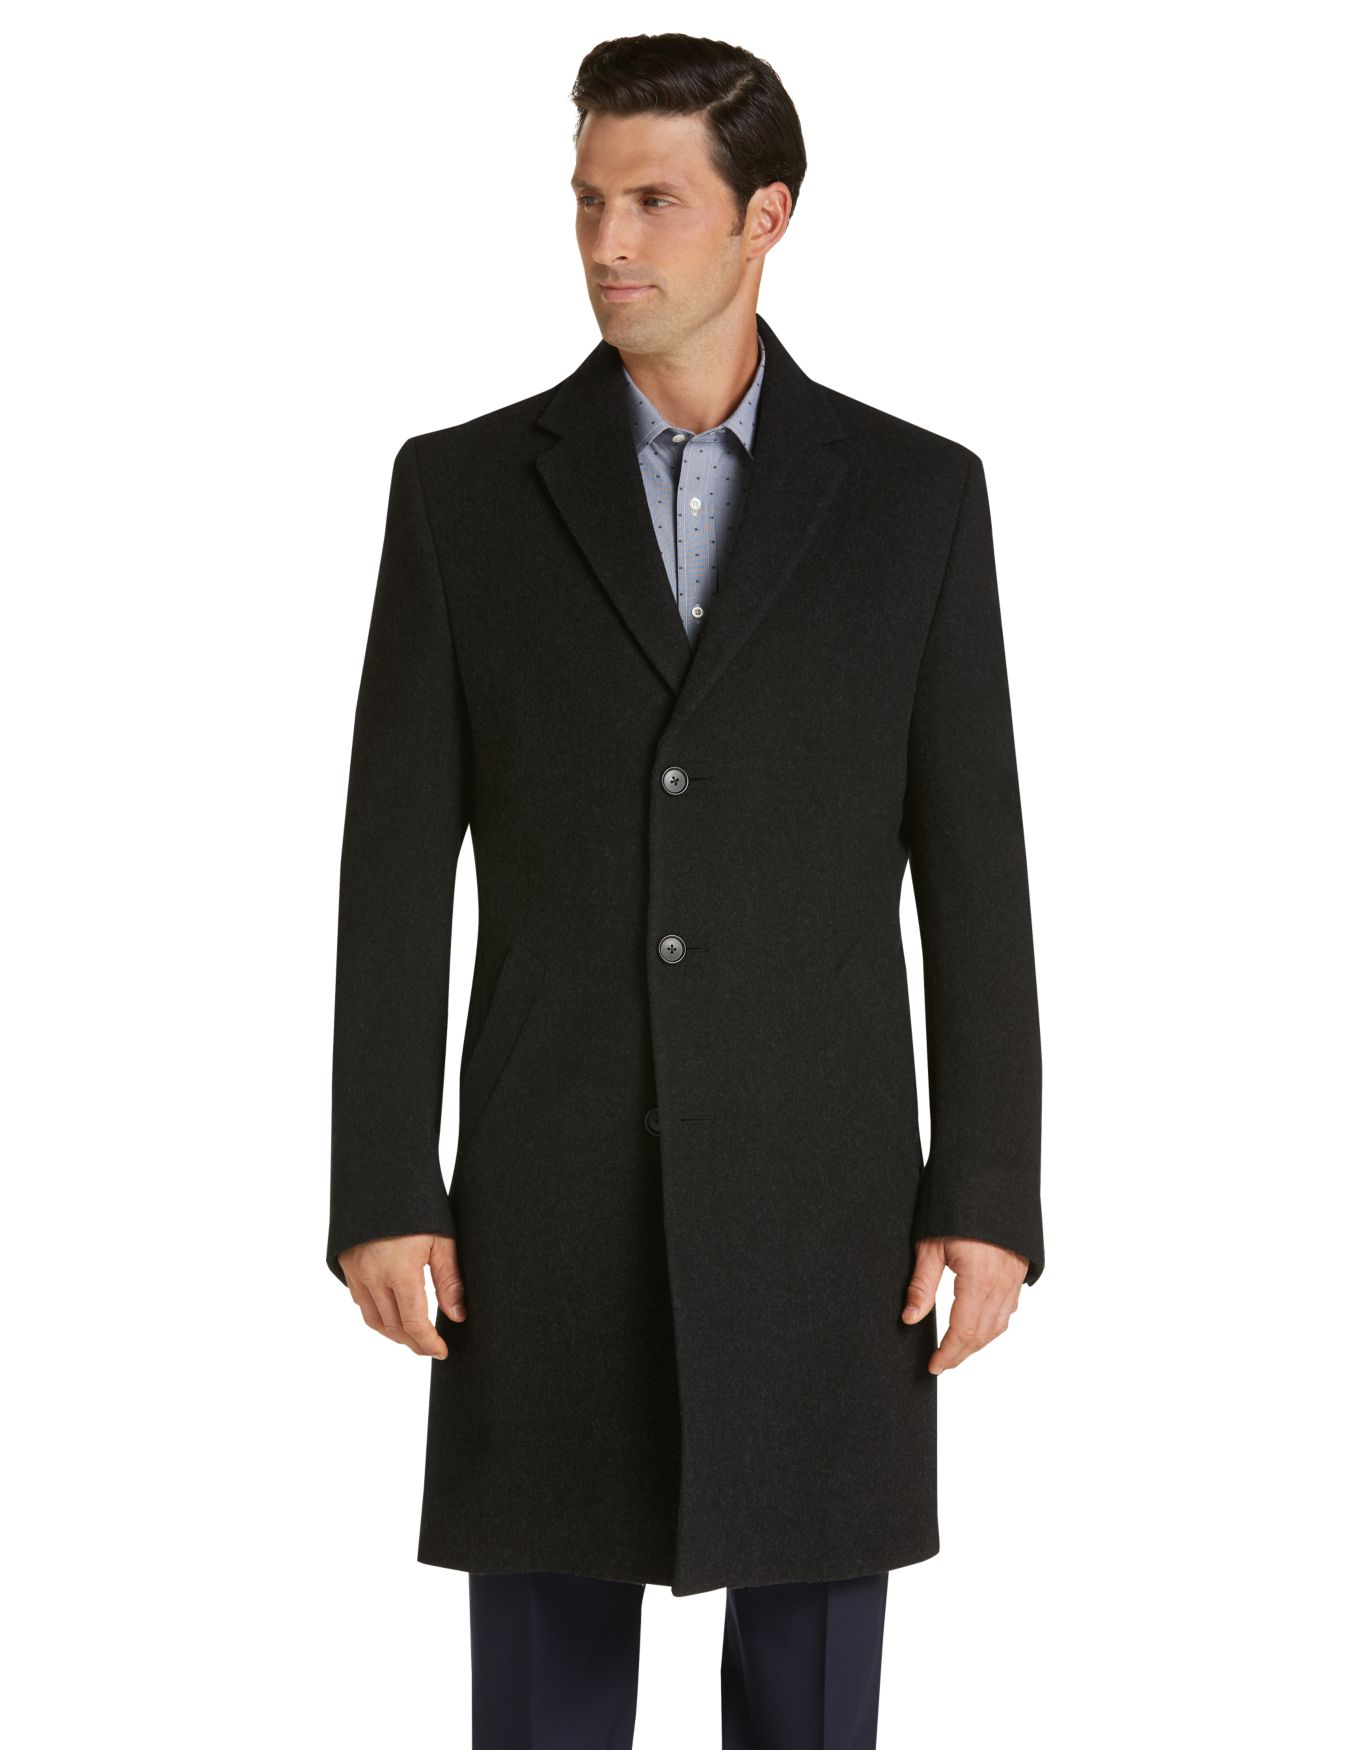 Men's Wool Coats & Duffle Coats | Men's Outerwear | JoS. A. Bank